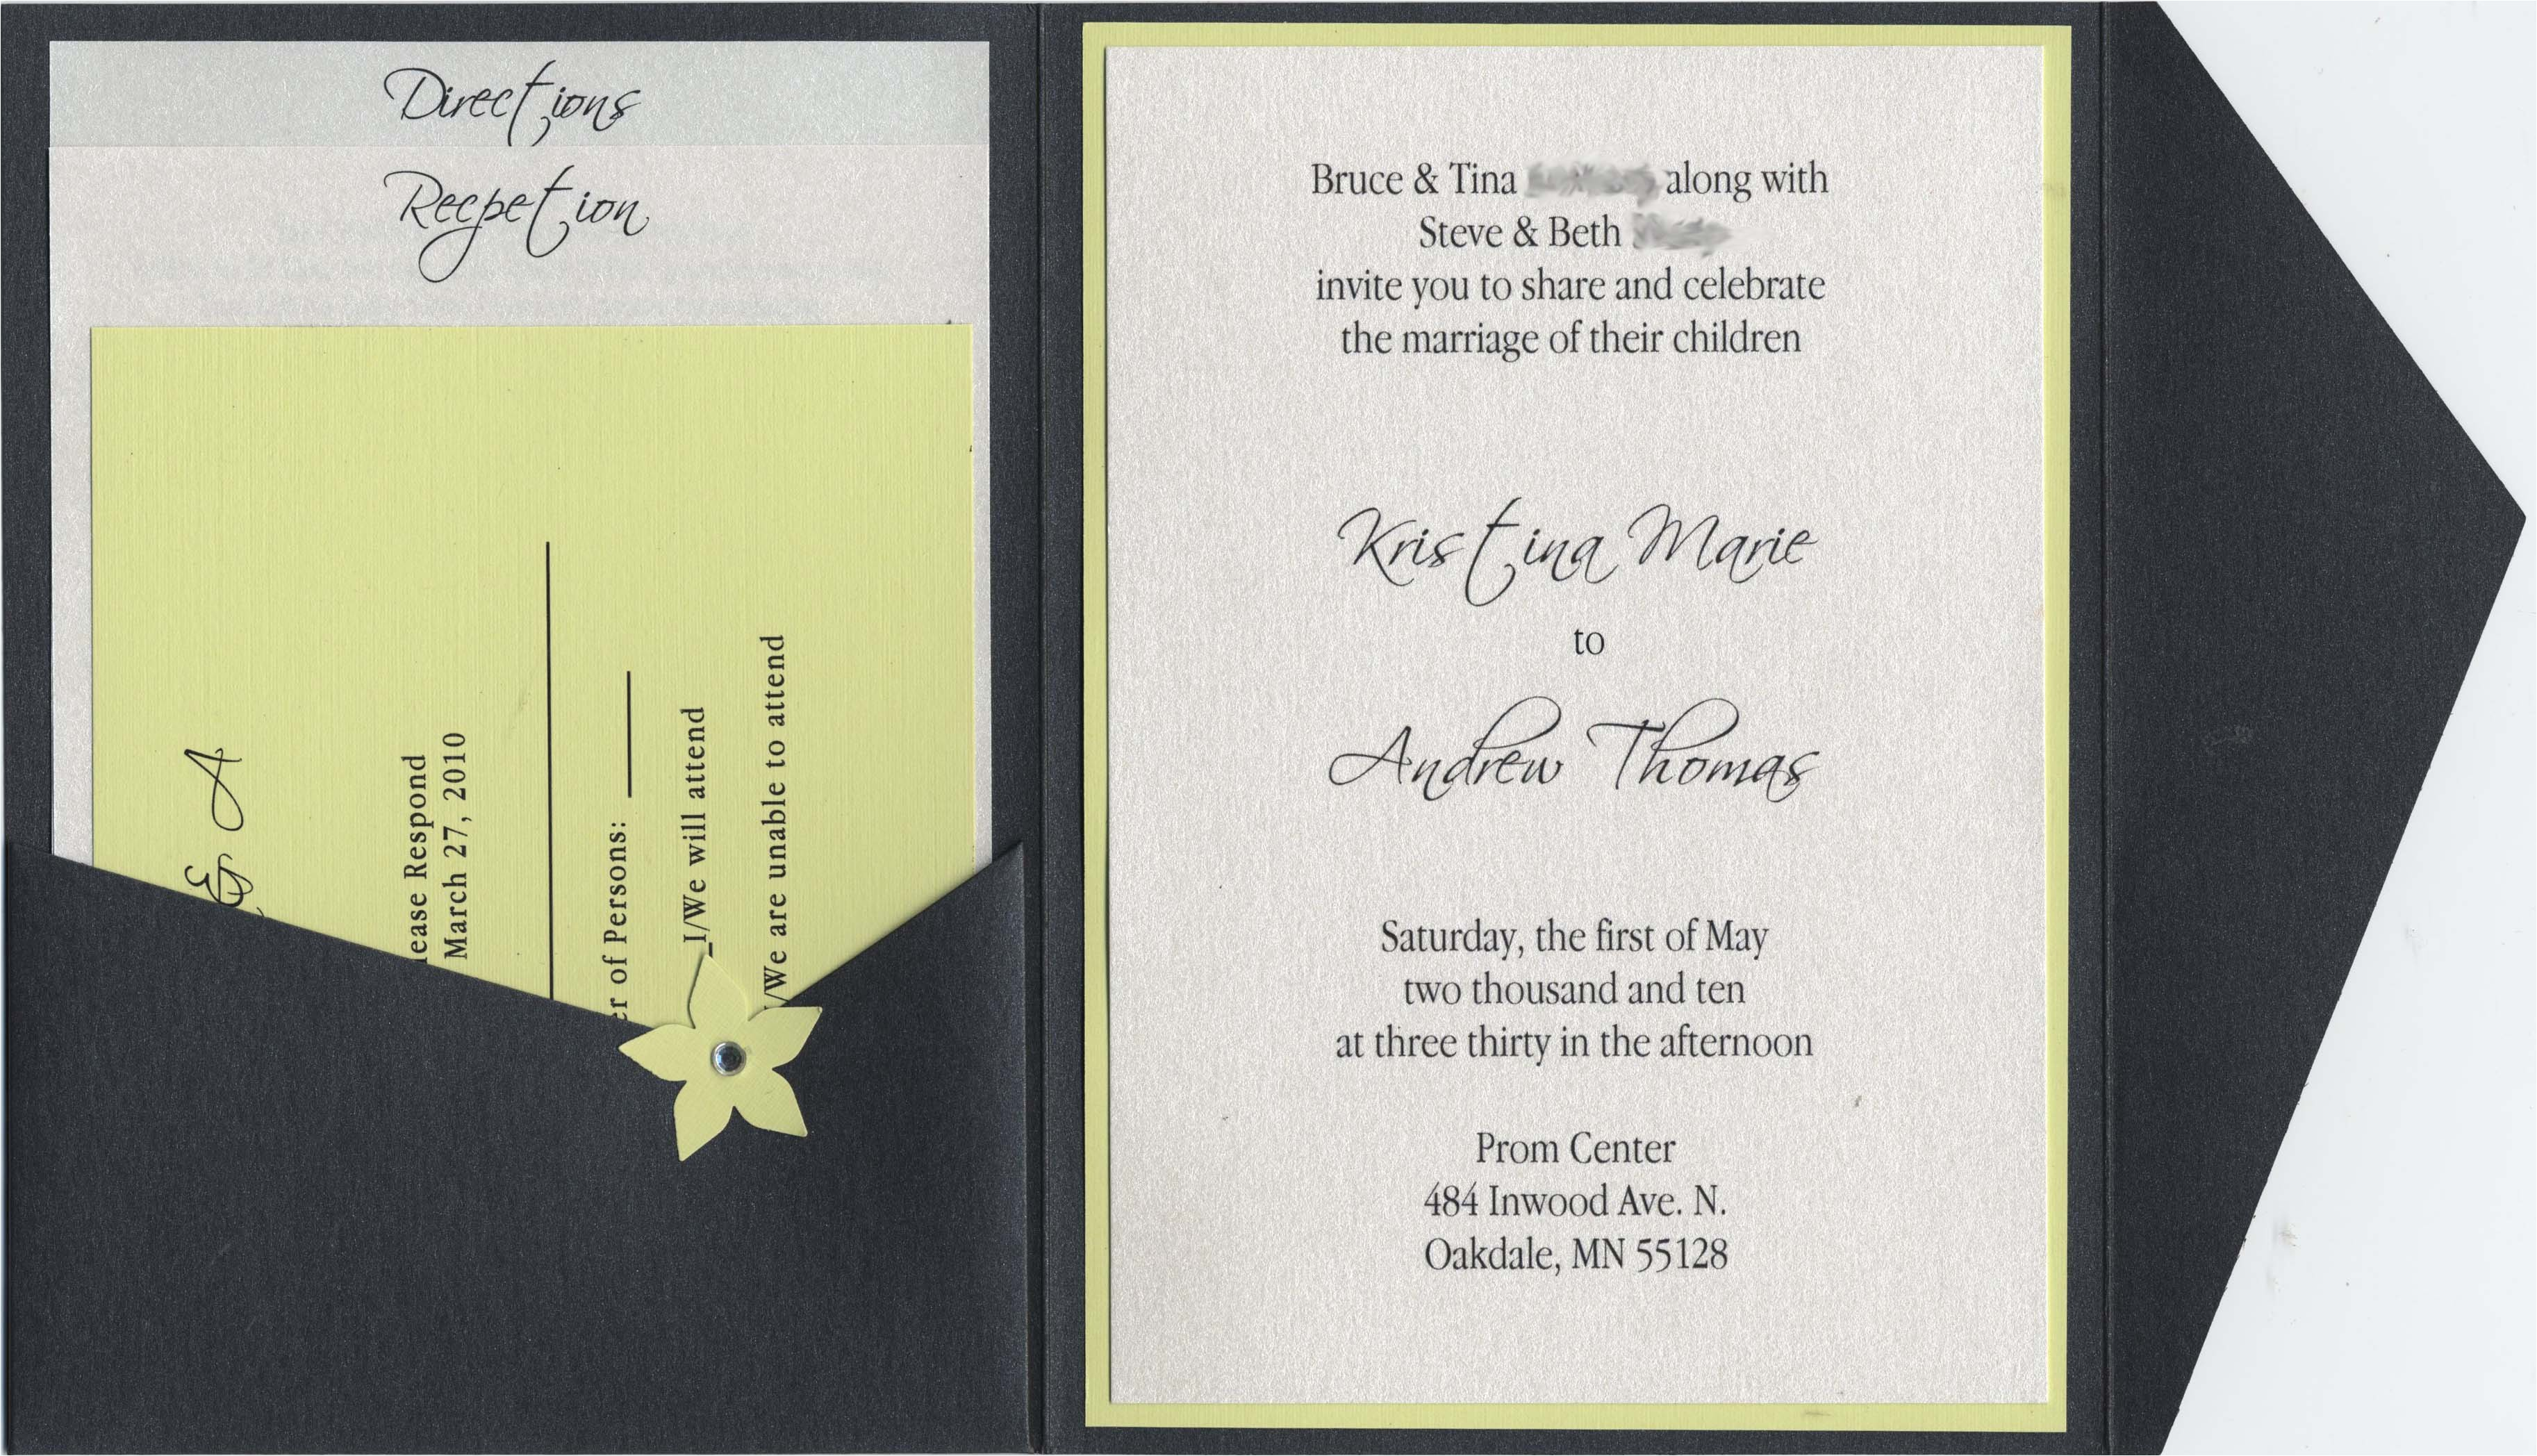 ideas about how to make wedding invitations at home for you